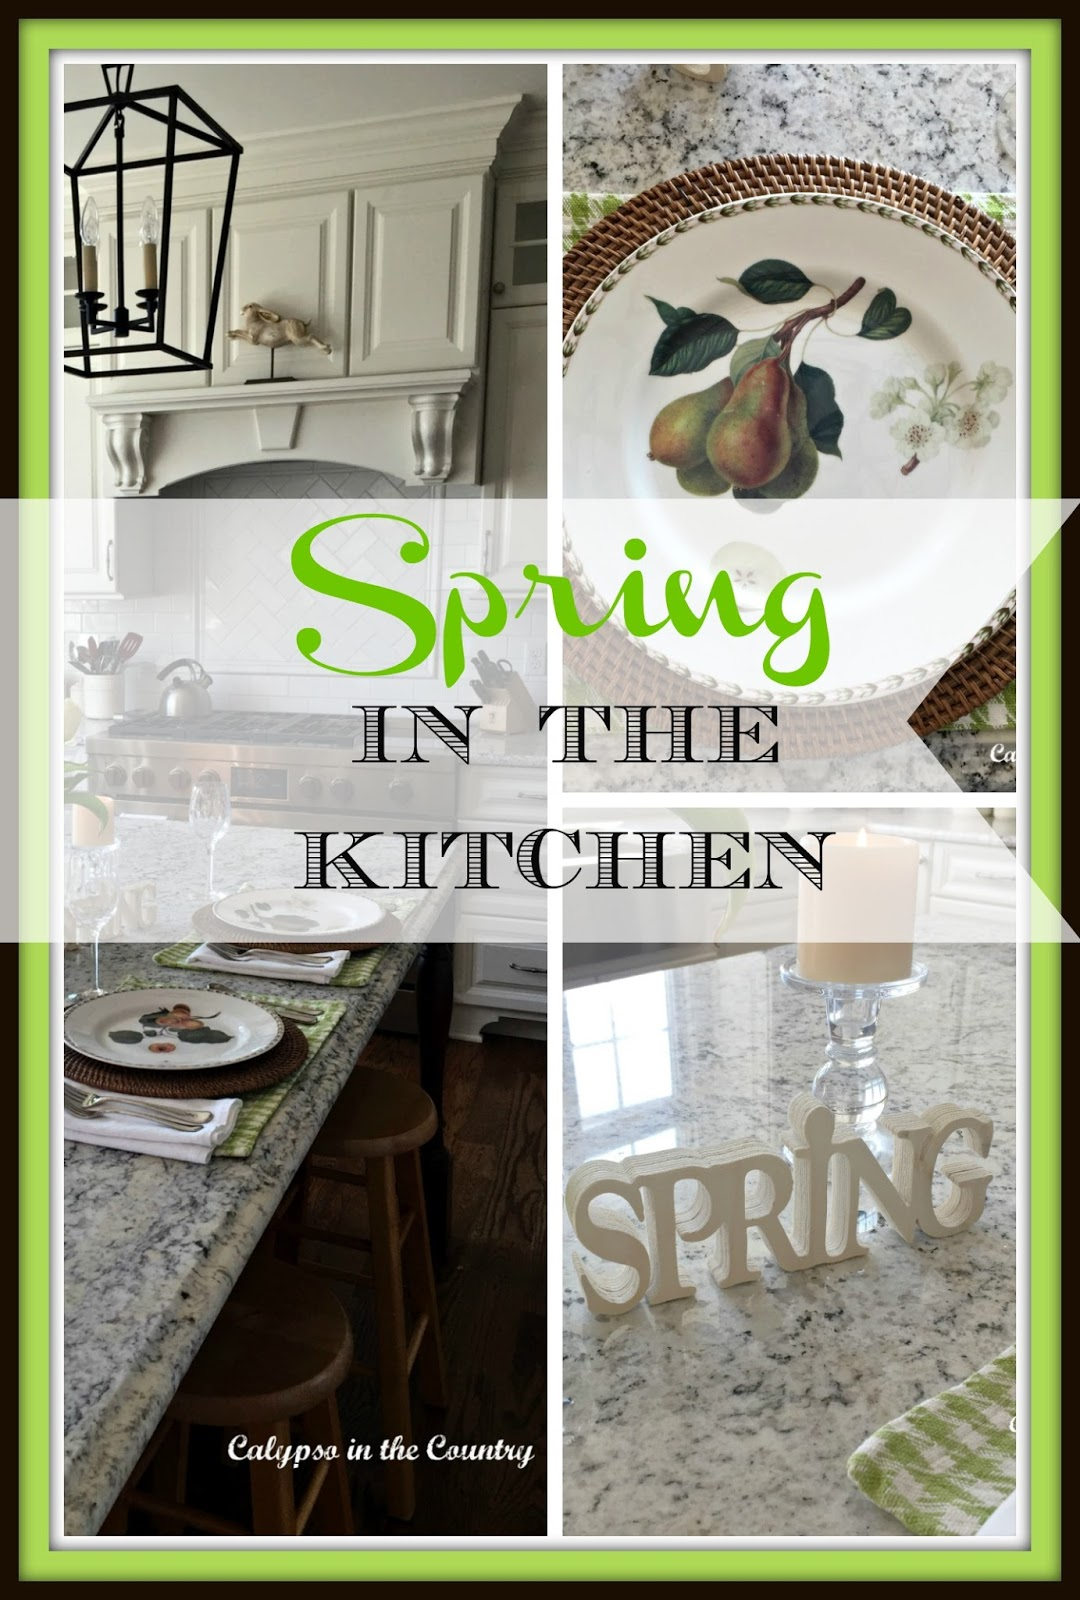 Spring Table Setting on the Island - Calypso in the Country blog